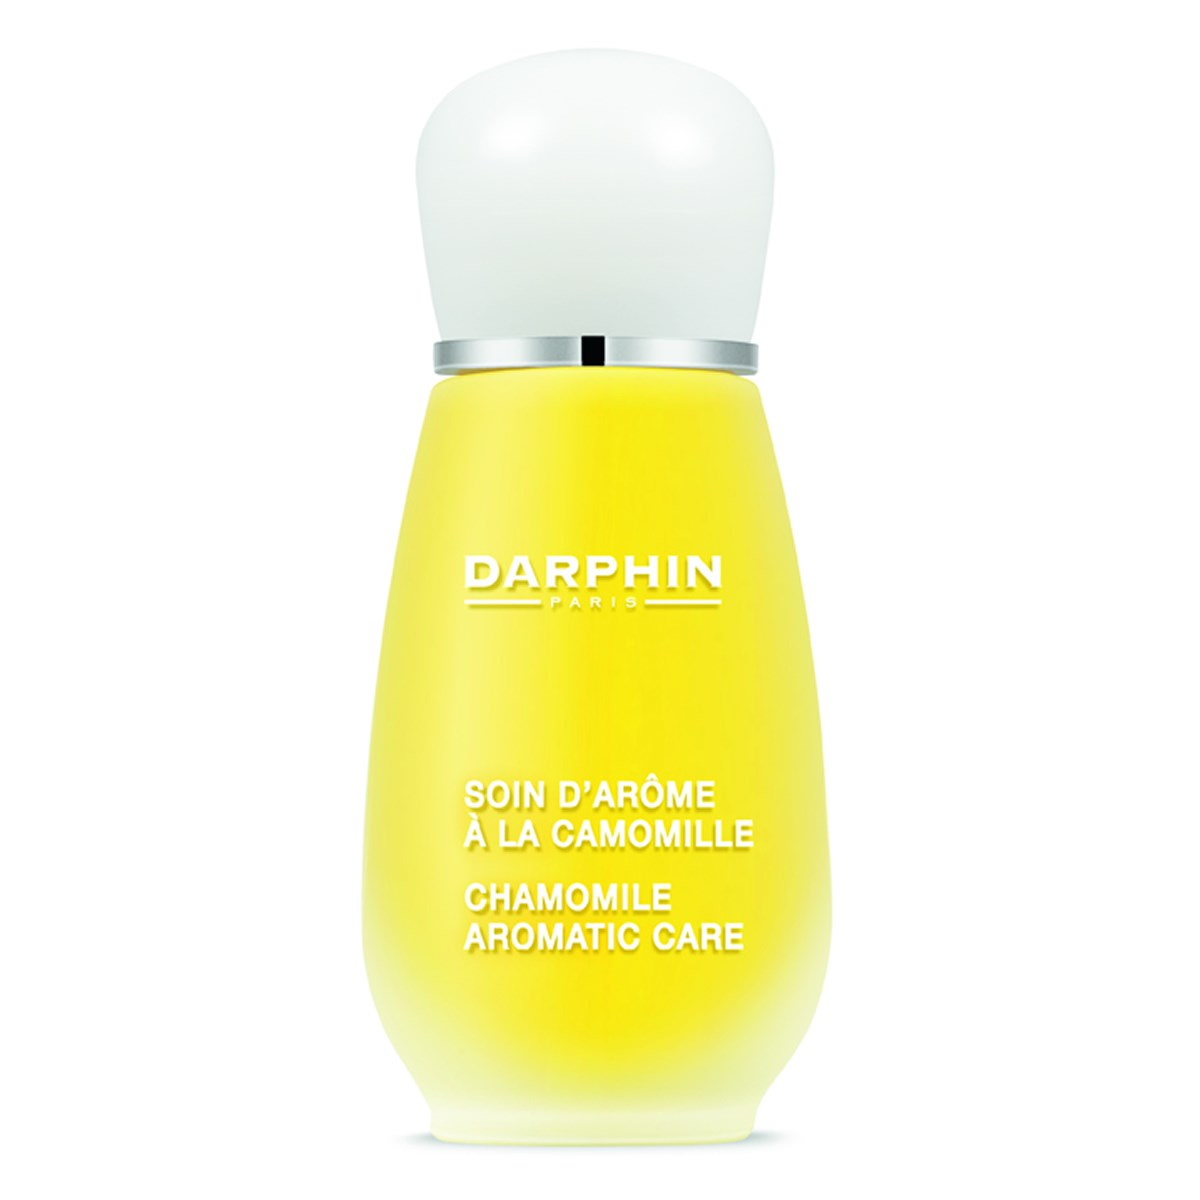 Darphin Chamomile Aromatic Care